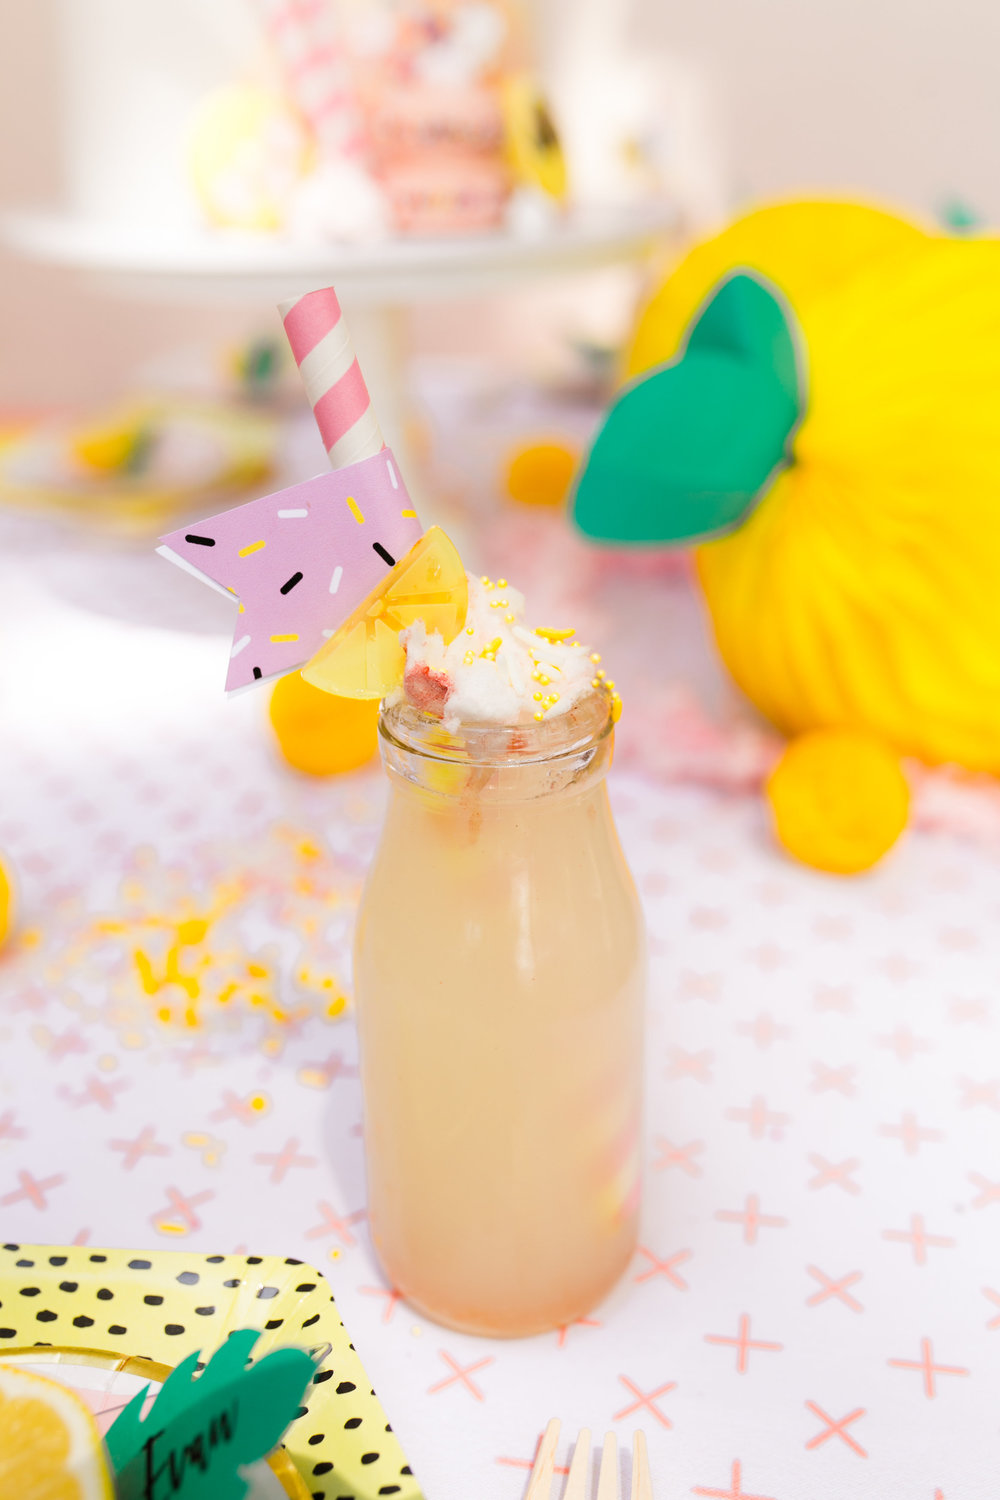 Lemonade Kids Birthday Party - Lemonade Party Drinks with Straws/Cotton Candy/and Sprinkles